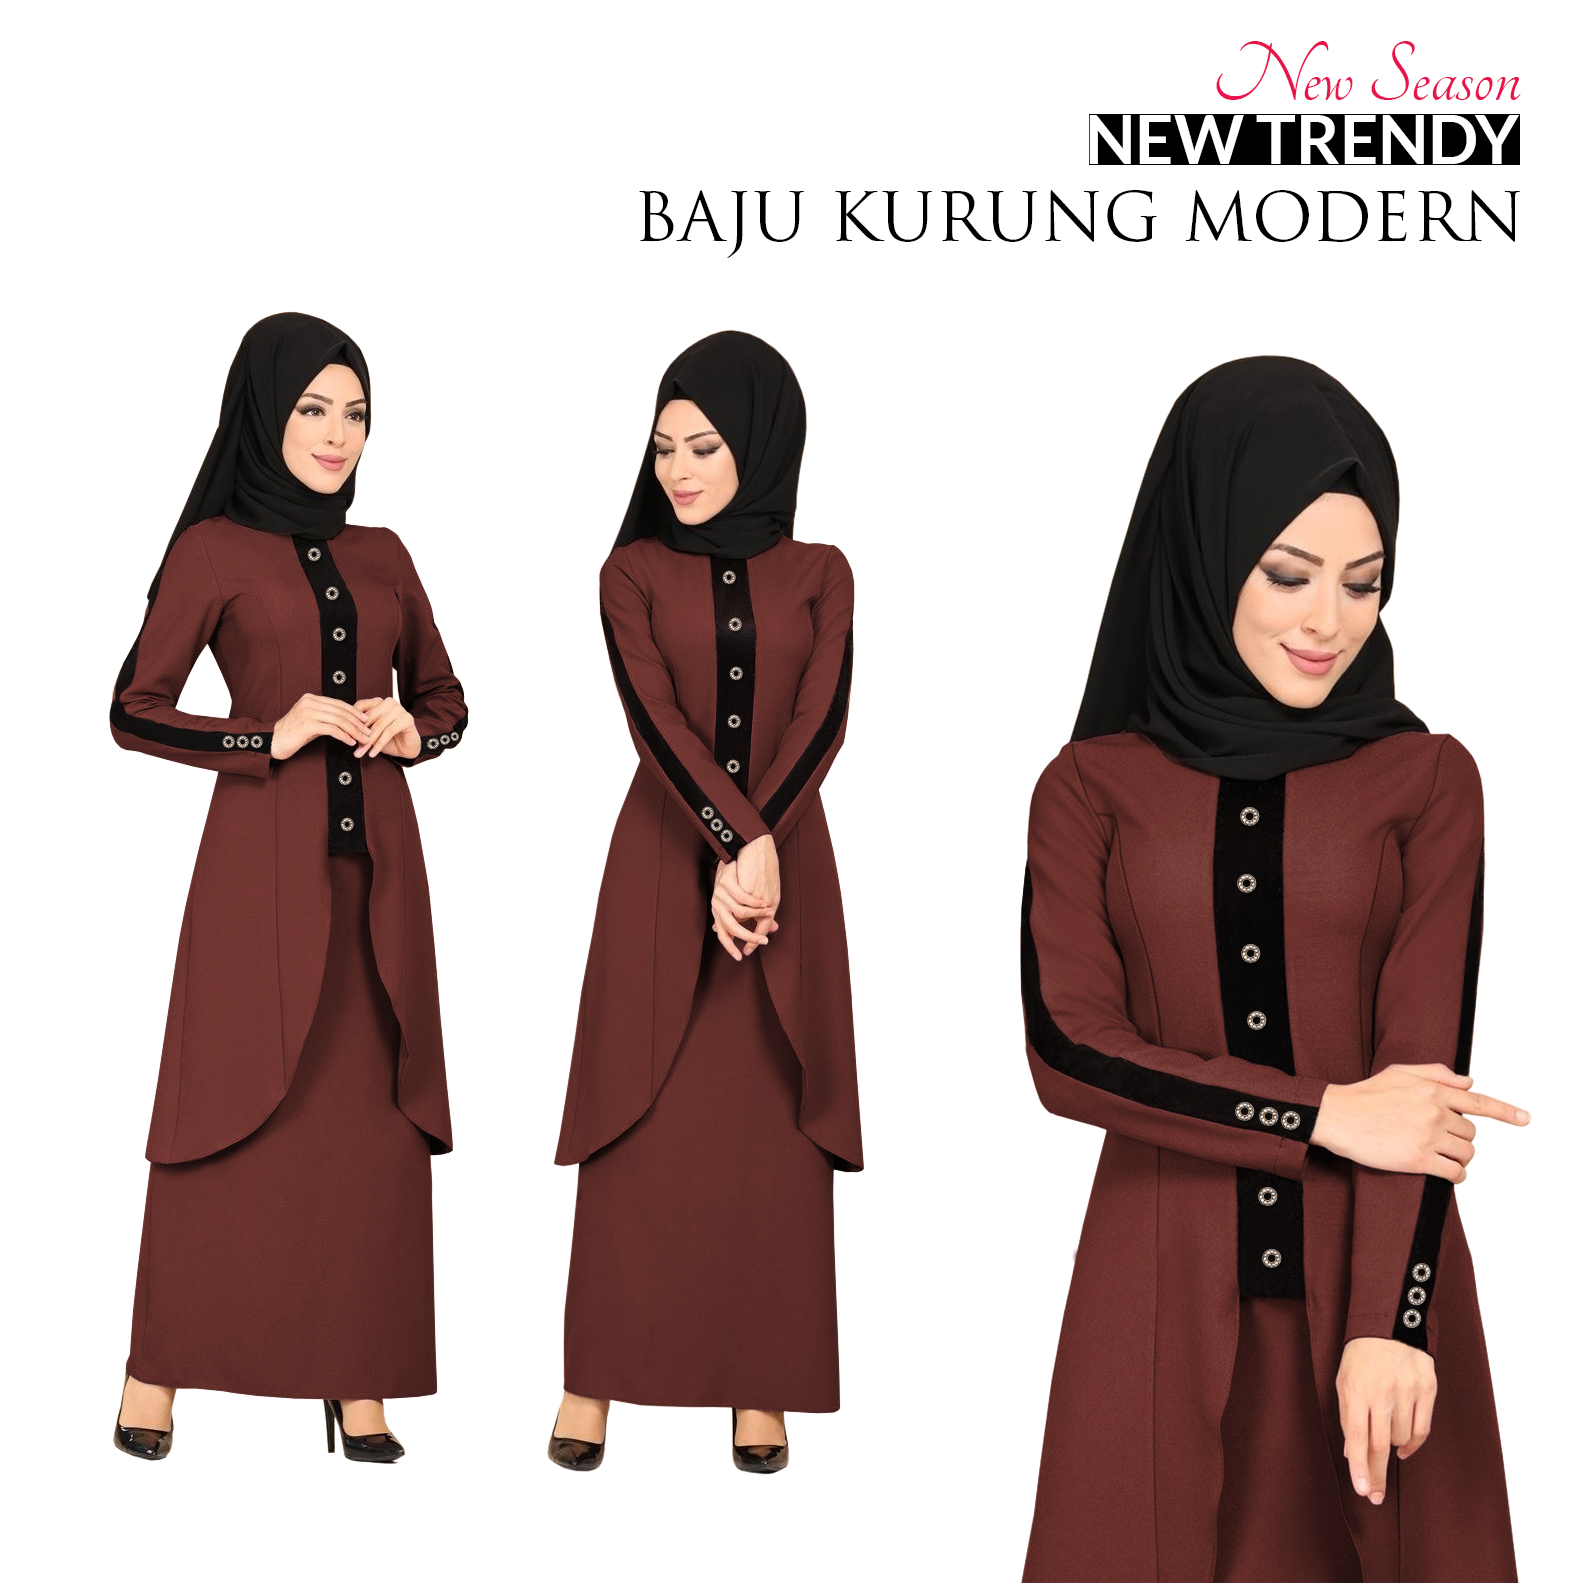 Harga New Season Trendy Baju Kurung Modern for Muslimah  READY STOCK  HOT ITEM 2020